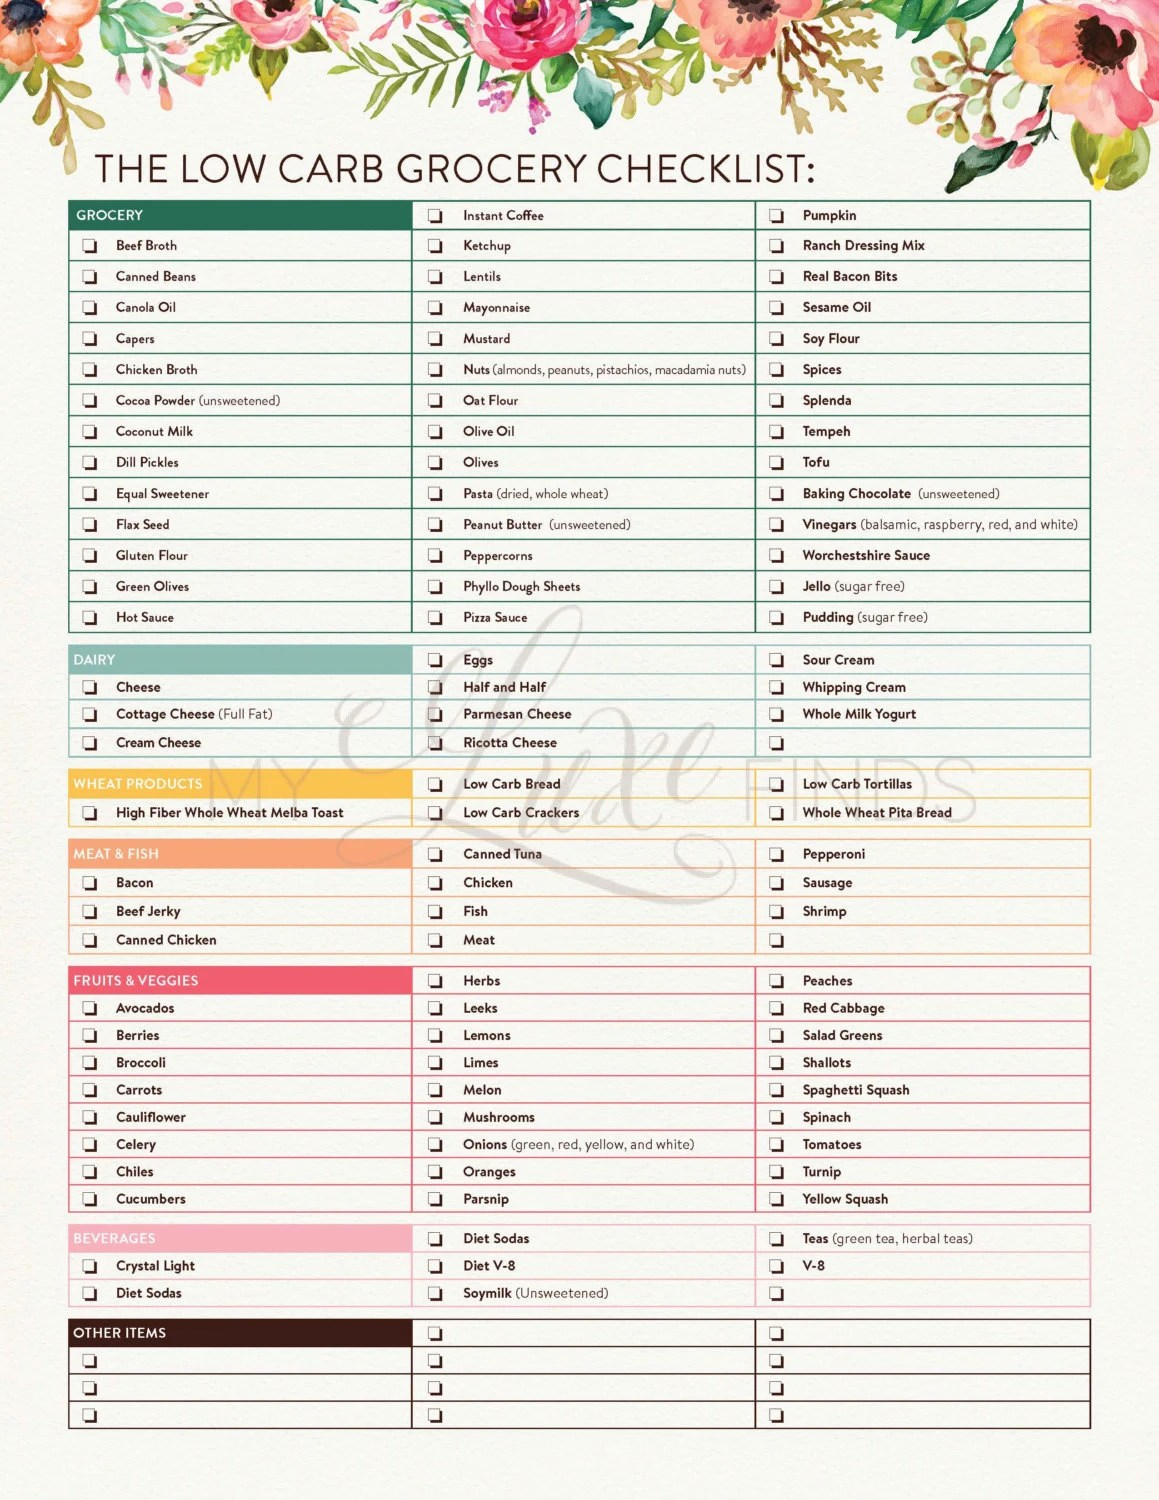 Low Carbt Grocery Shopping Checklist List South Beach